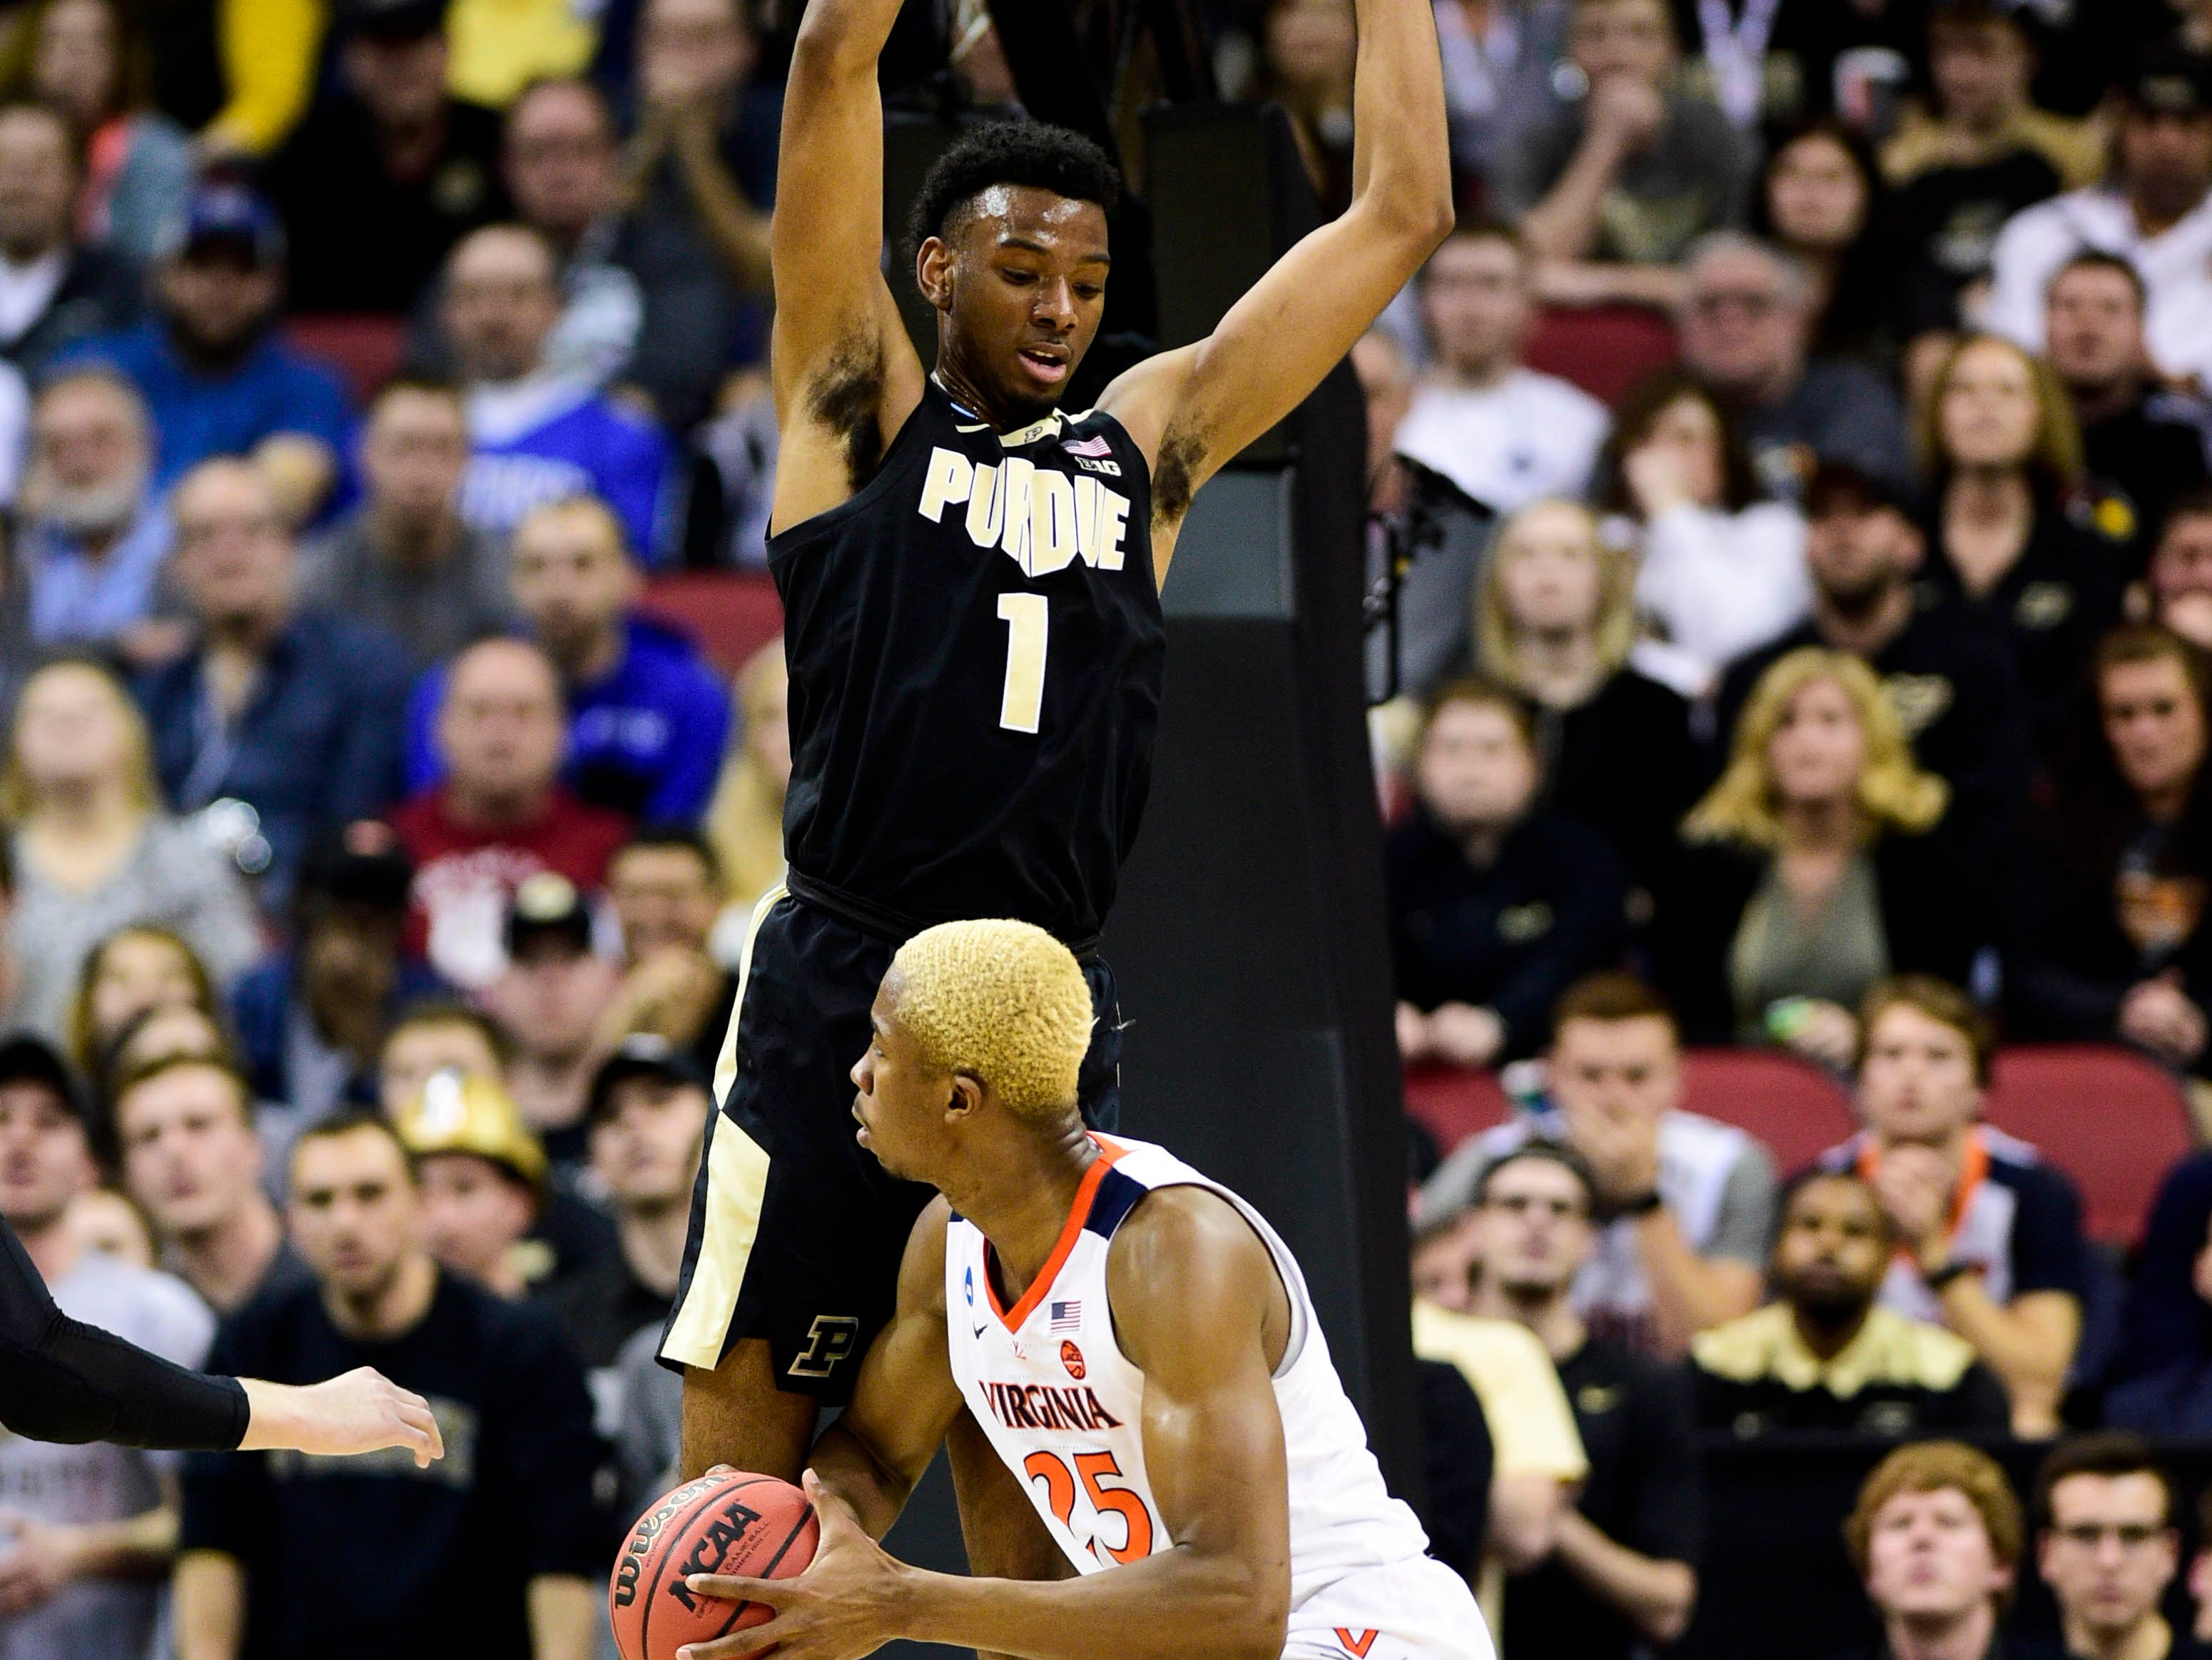 Mar 30, 2019; Louisville, KY, United States; Purdue Boilermakers forward Aaron Wheeler (1) defends Virginia Cavaliers forward Mamadi Diakite (25) during the first half in the championship game of the south regional of the 2019 NCAA Tournament at KFC Yum Center. Mandatory Credit: Thomas J. Russo-USA TODAY Sports